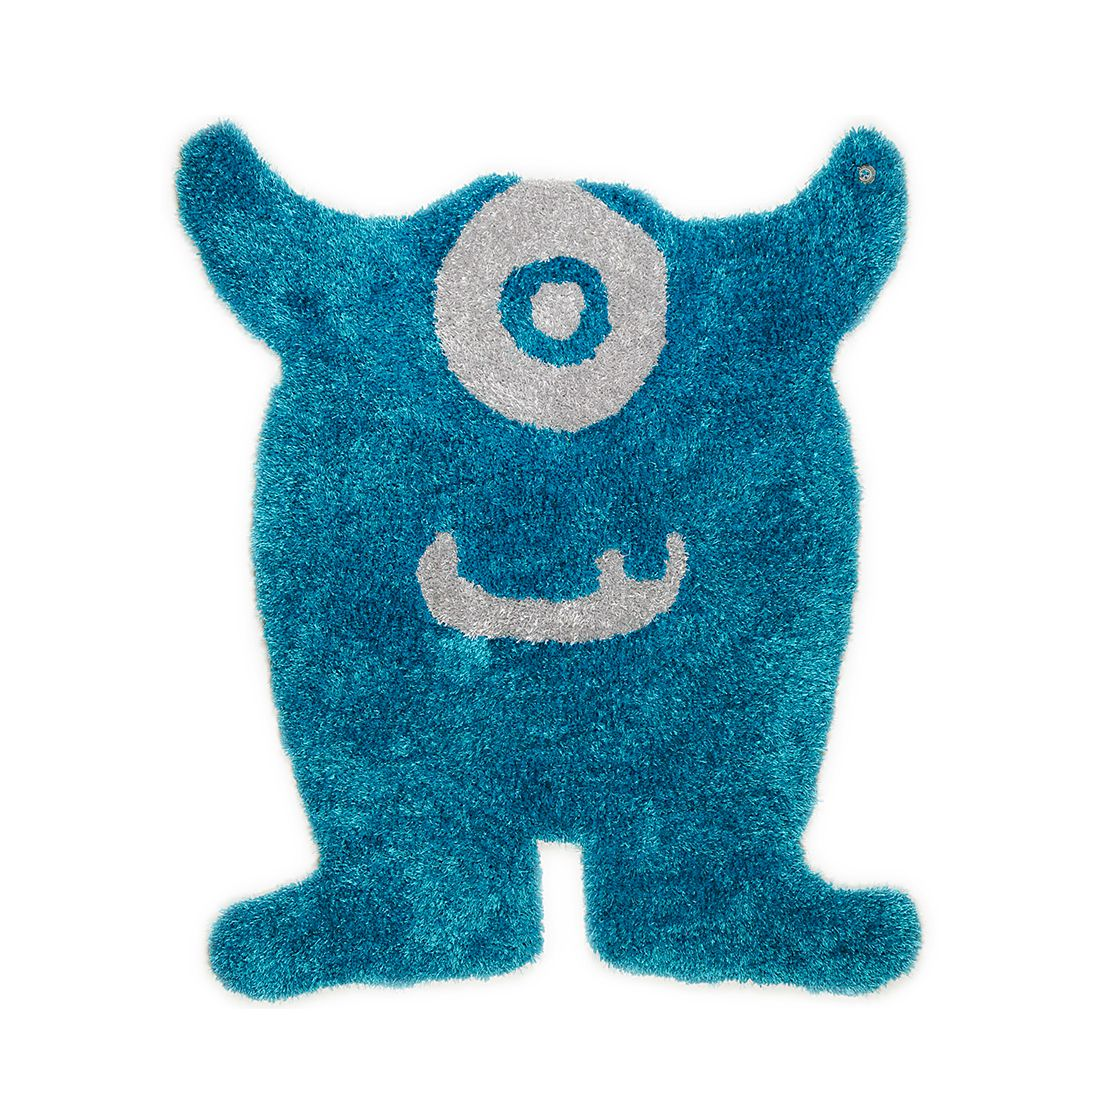 Home 24 - Tapis soft monster - turquoise - 120 x 100 cm, tom tailor